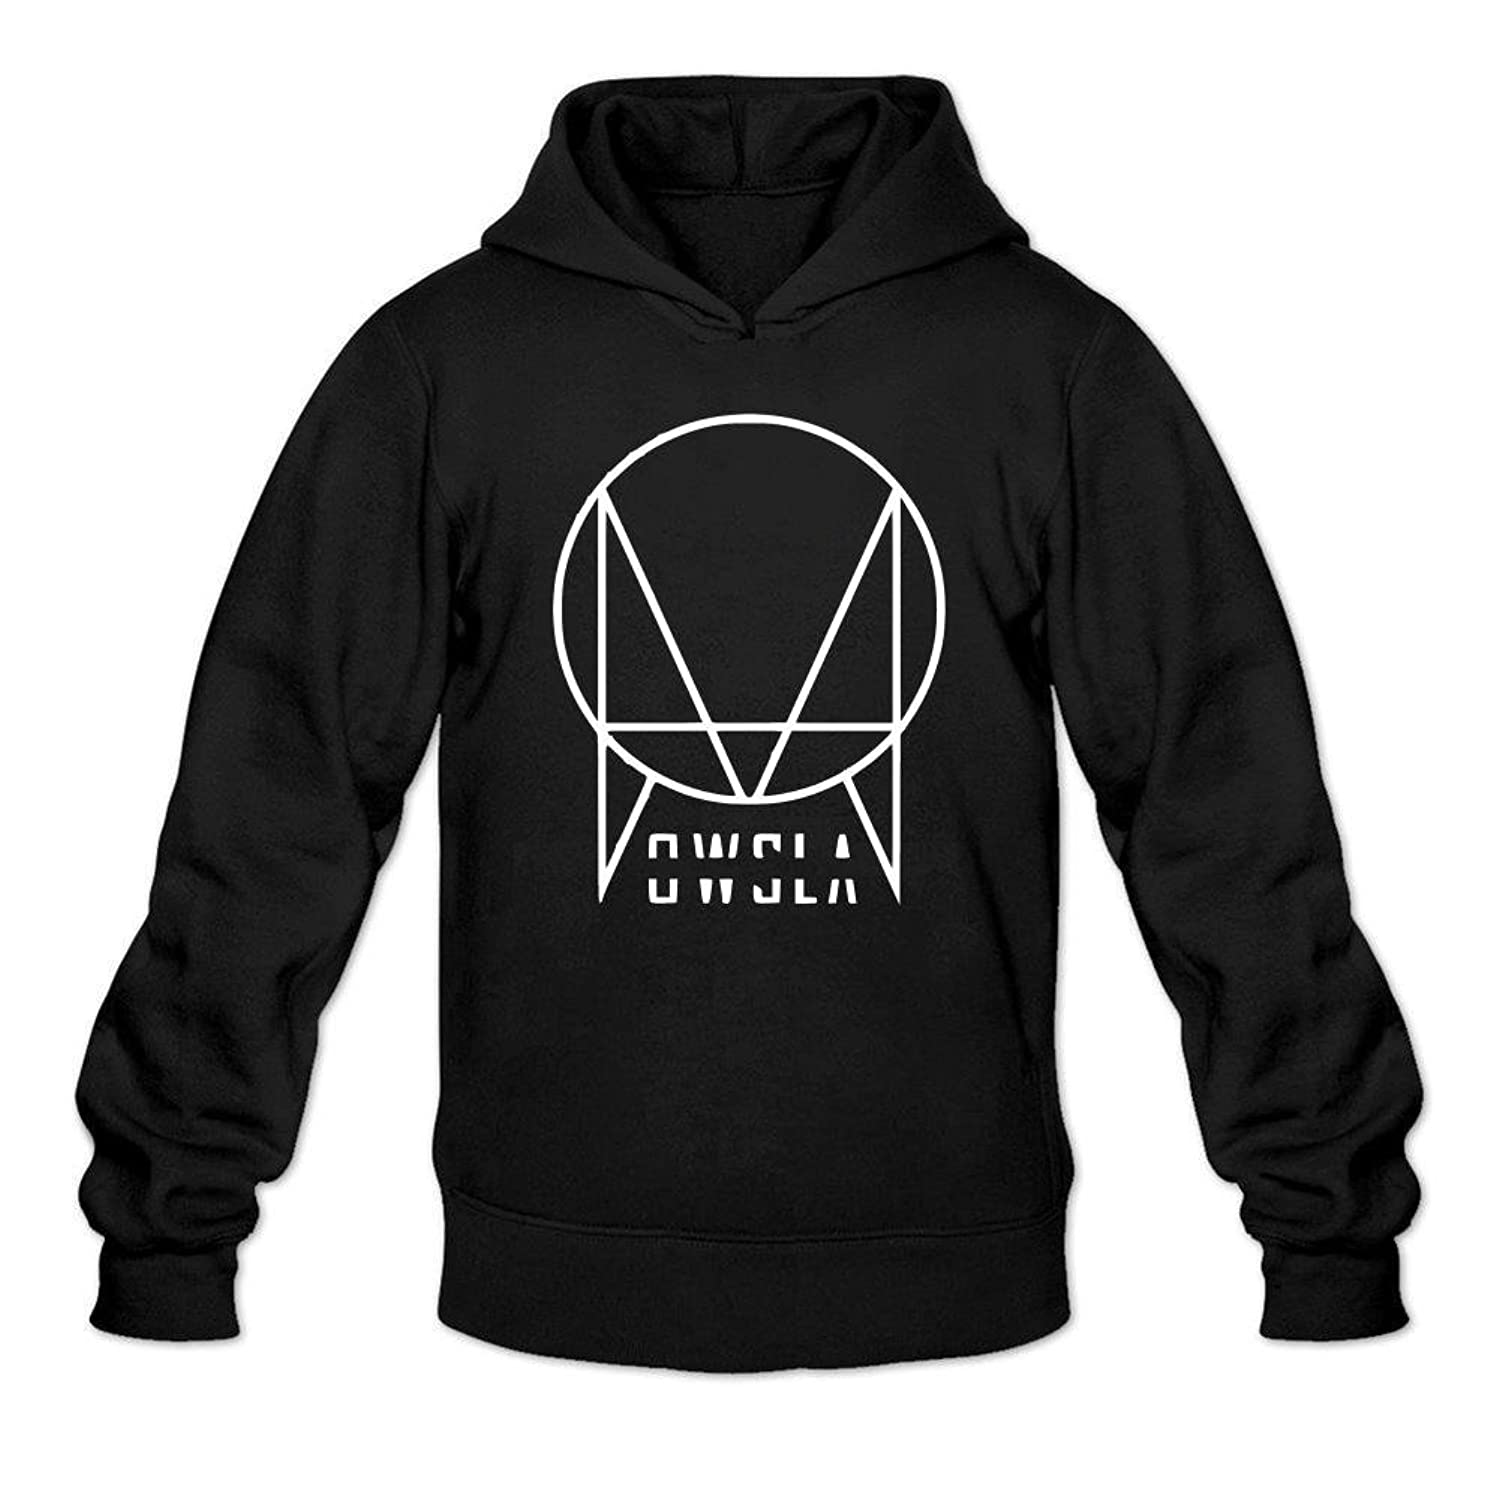 on sale Niceda Men's Owsla Long Sleeve Sweatshirts Hoodie